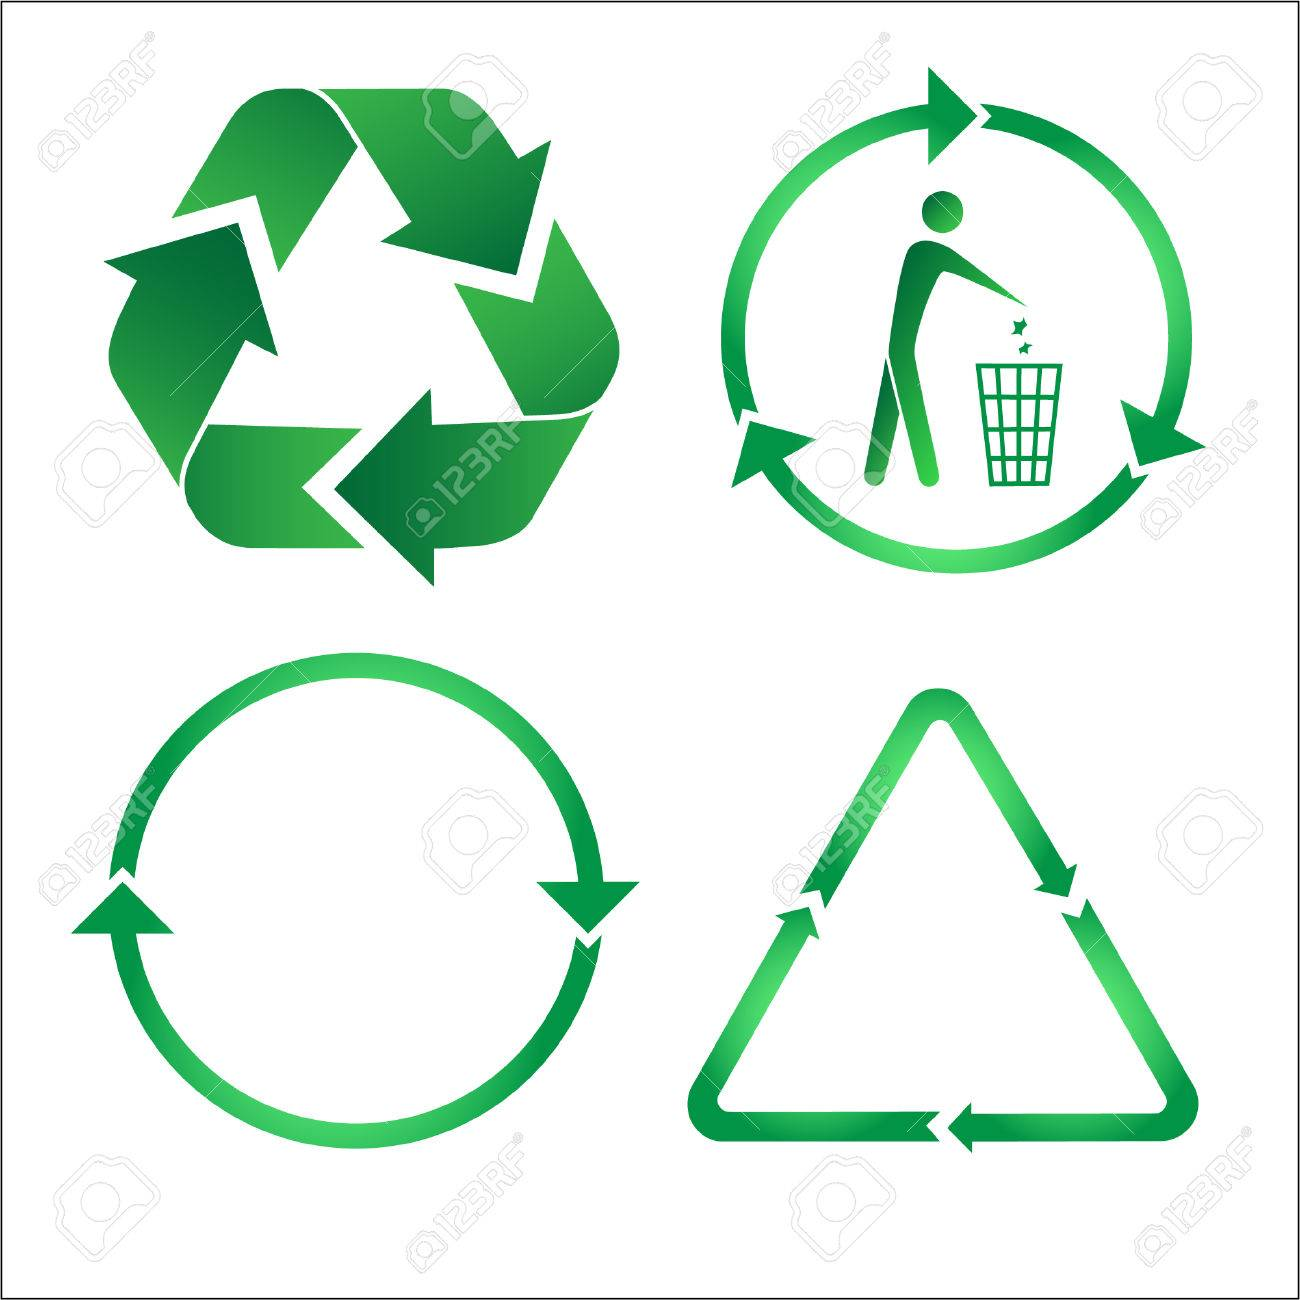 Recycle icons. Green and white. Other ecological vectors you can see in my portfolio. Stock Vector - 3219700